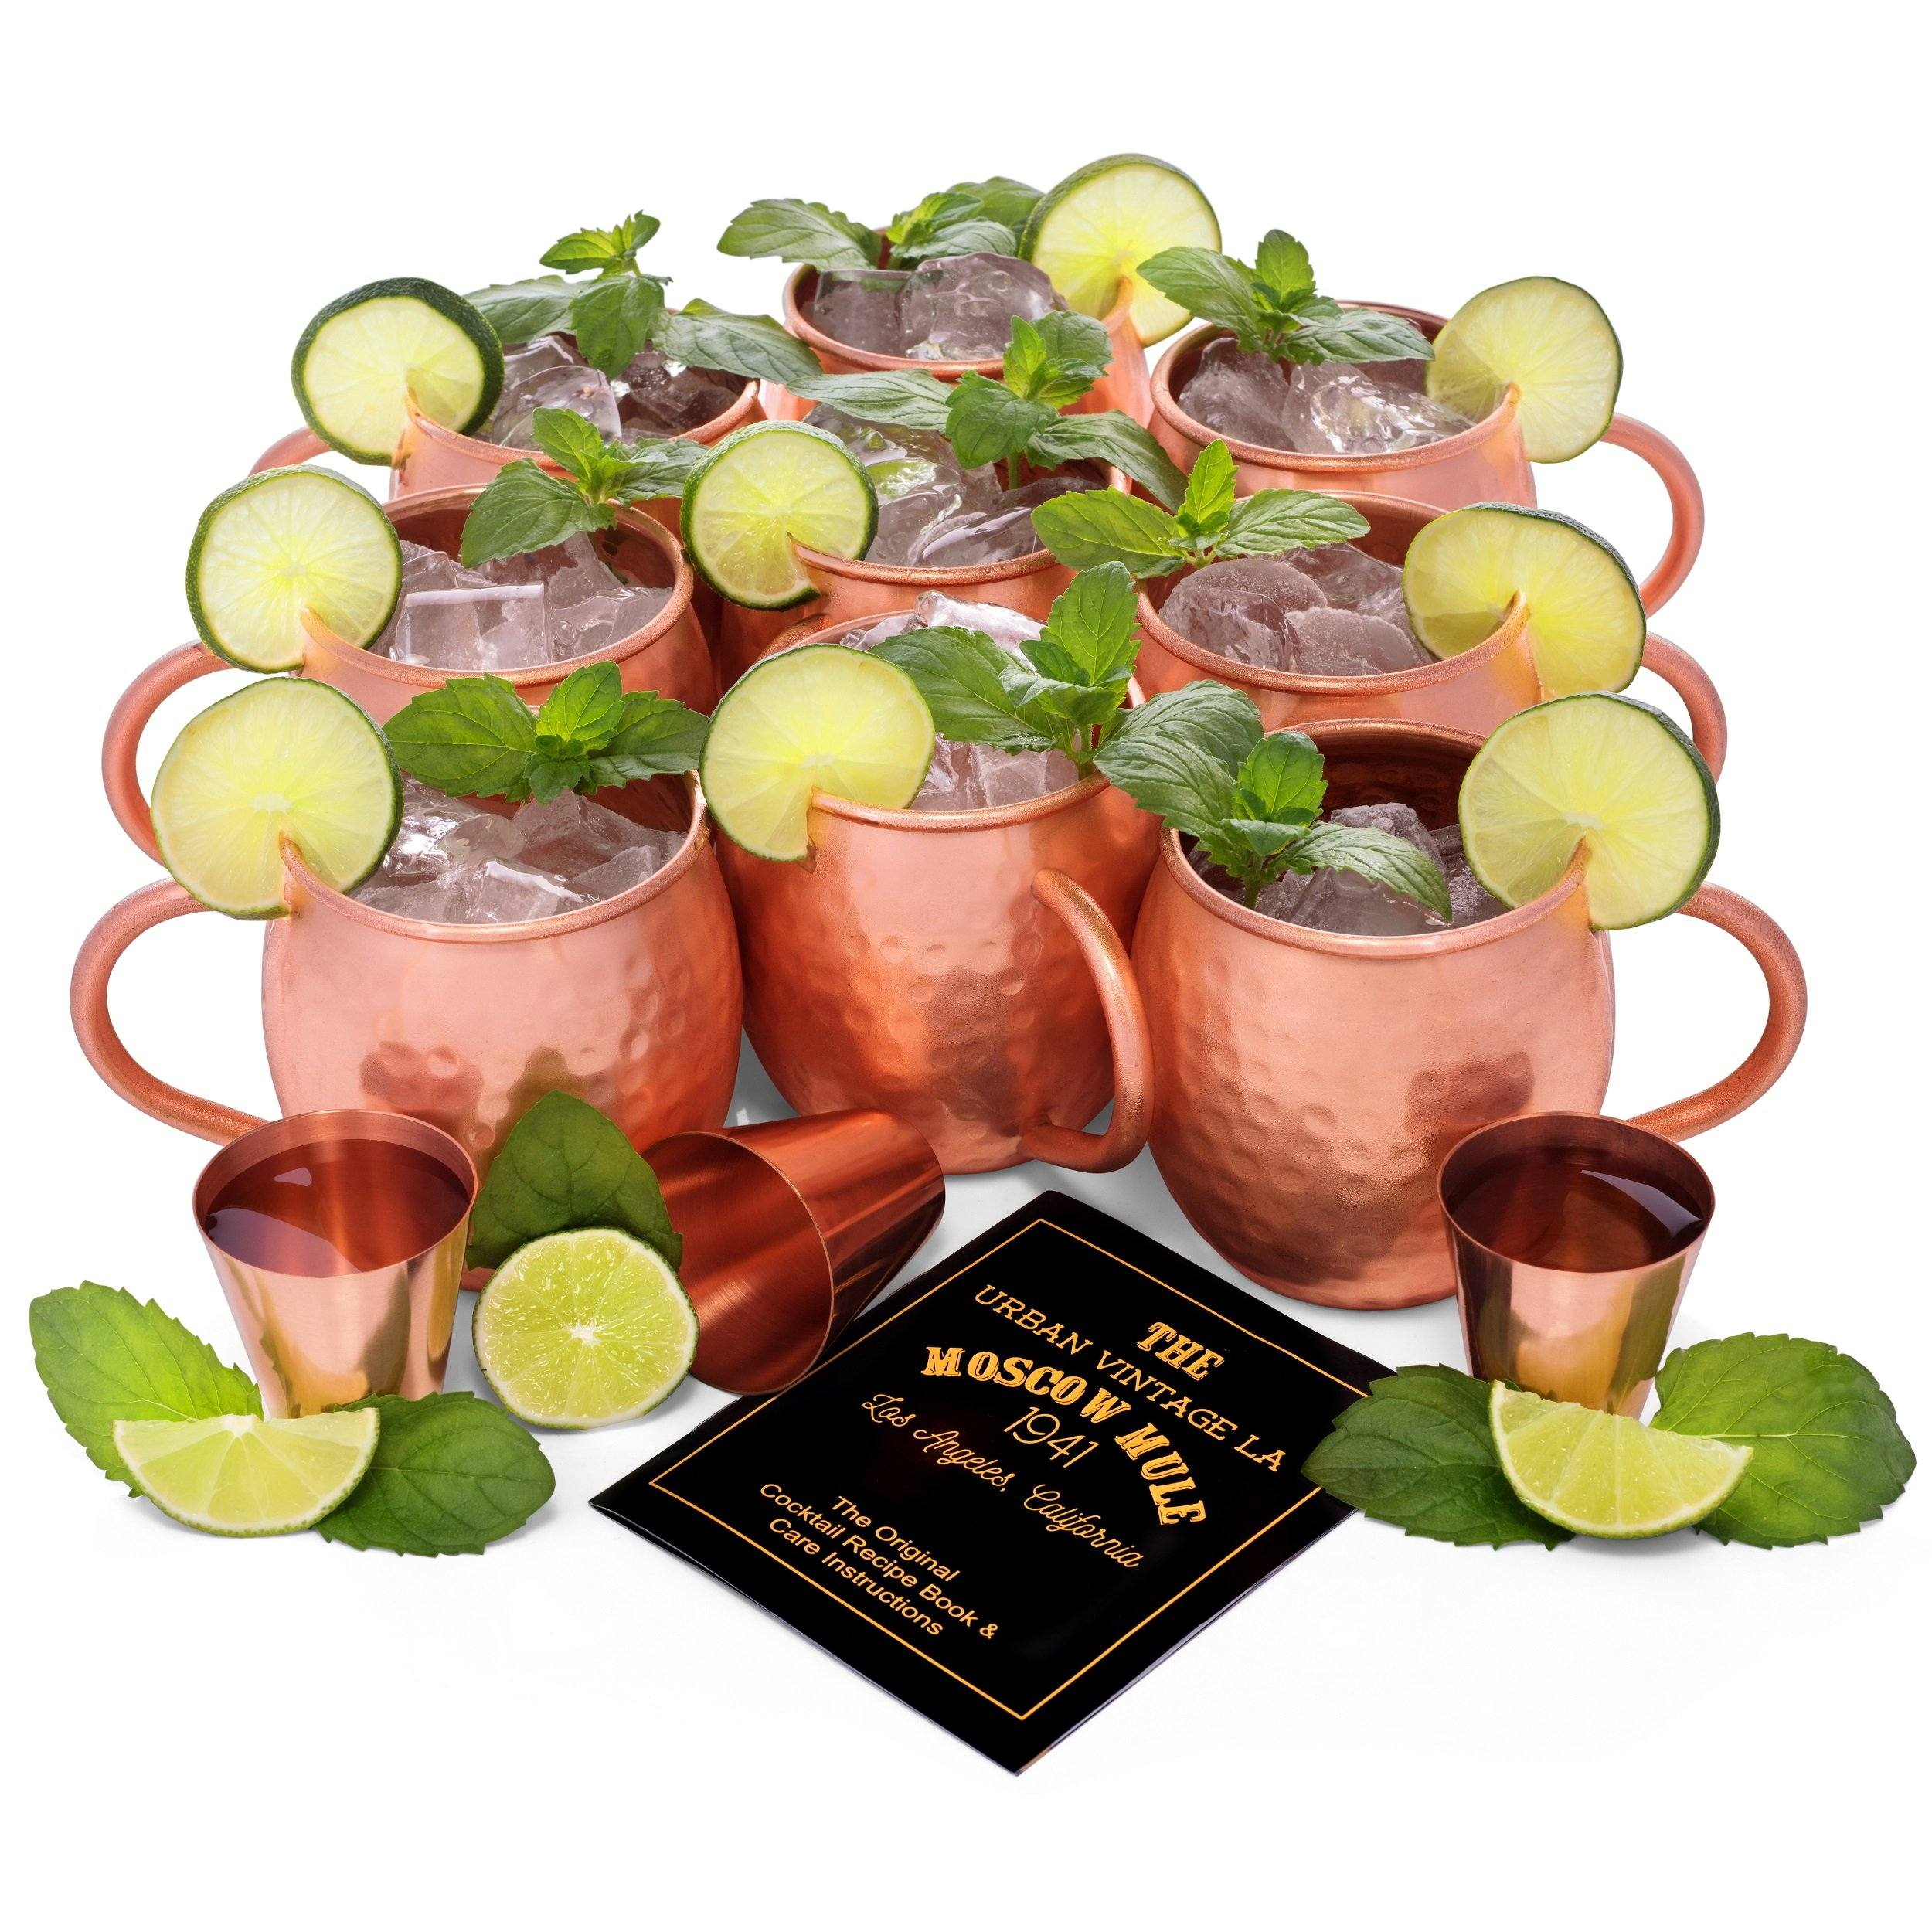 Urban Vintage LA Moscow Mule Copper Mugs Set of 8 Value Pack For Large Parties